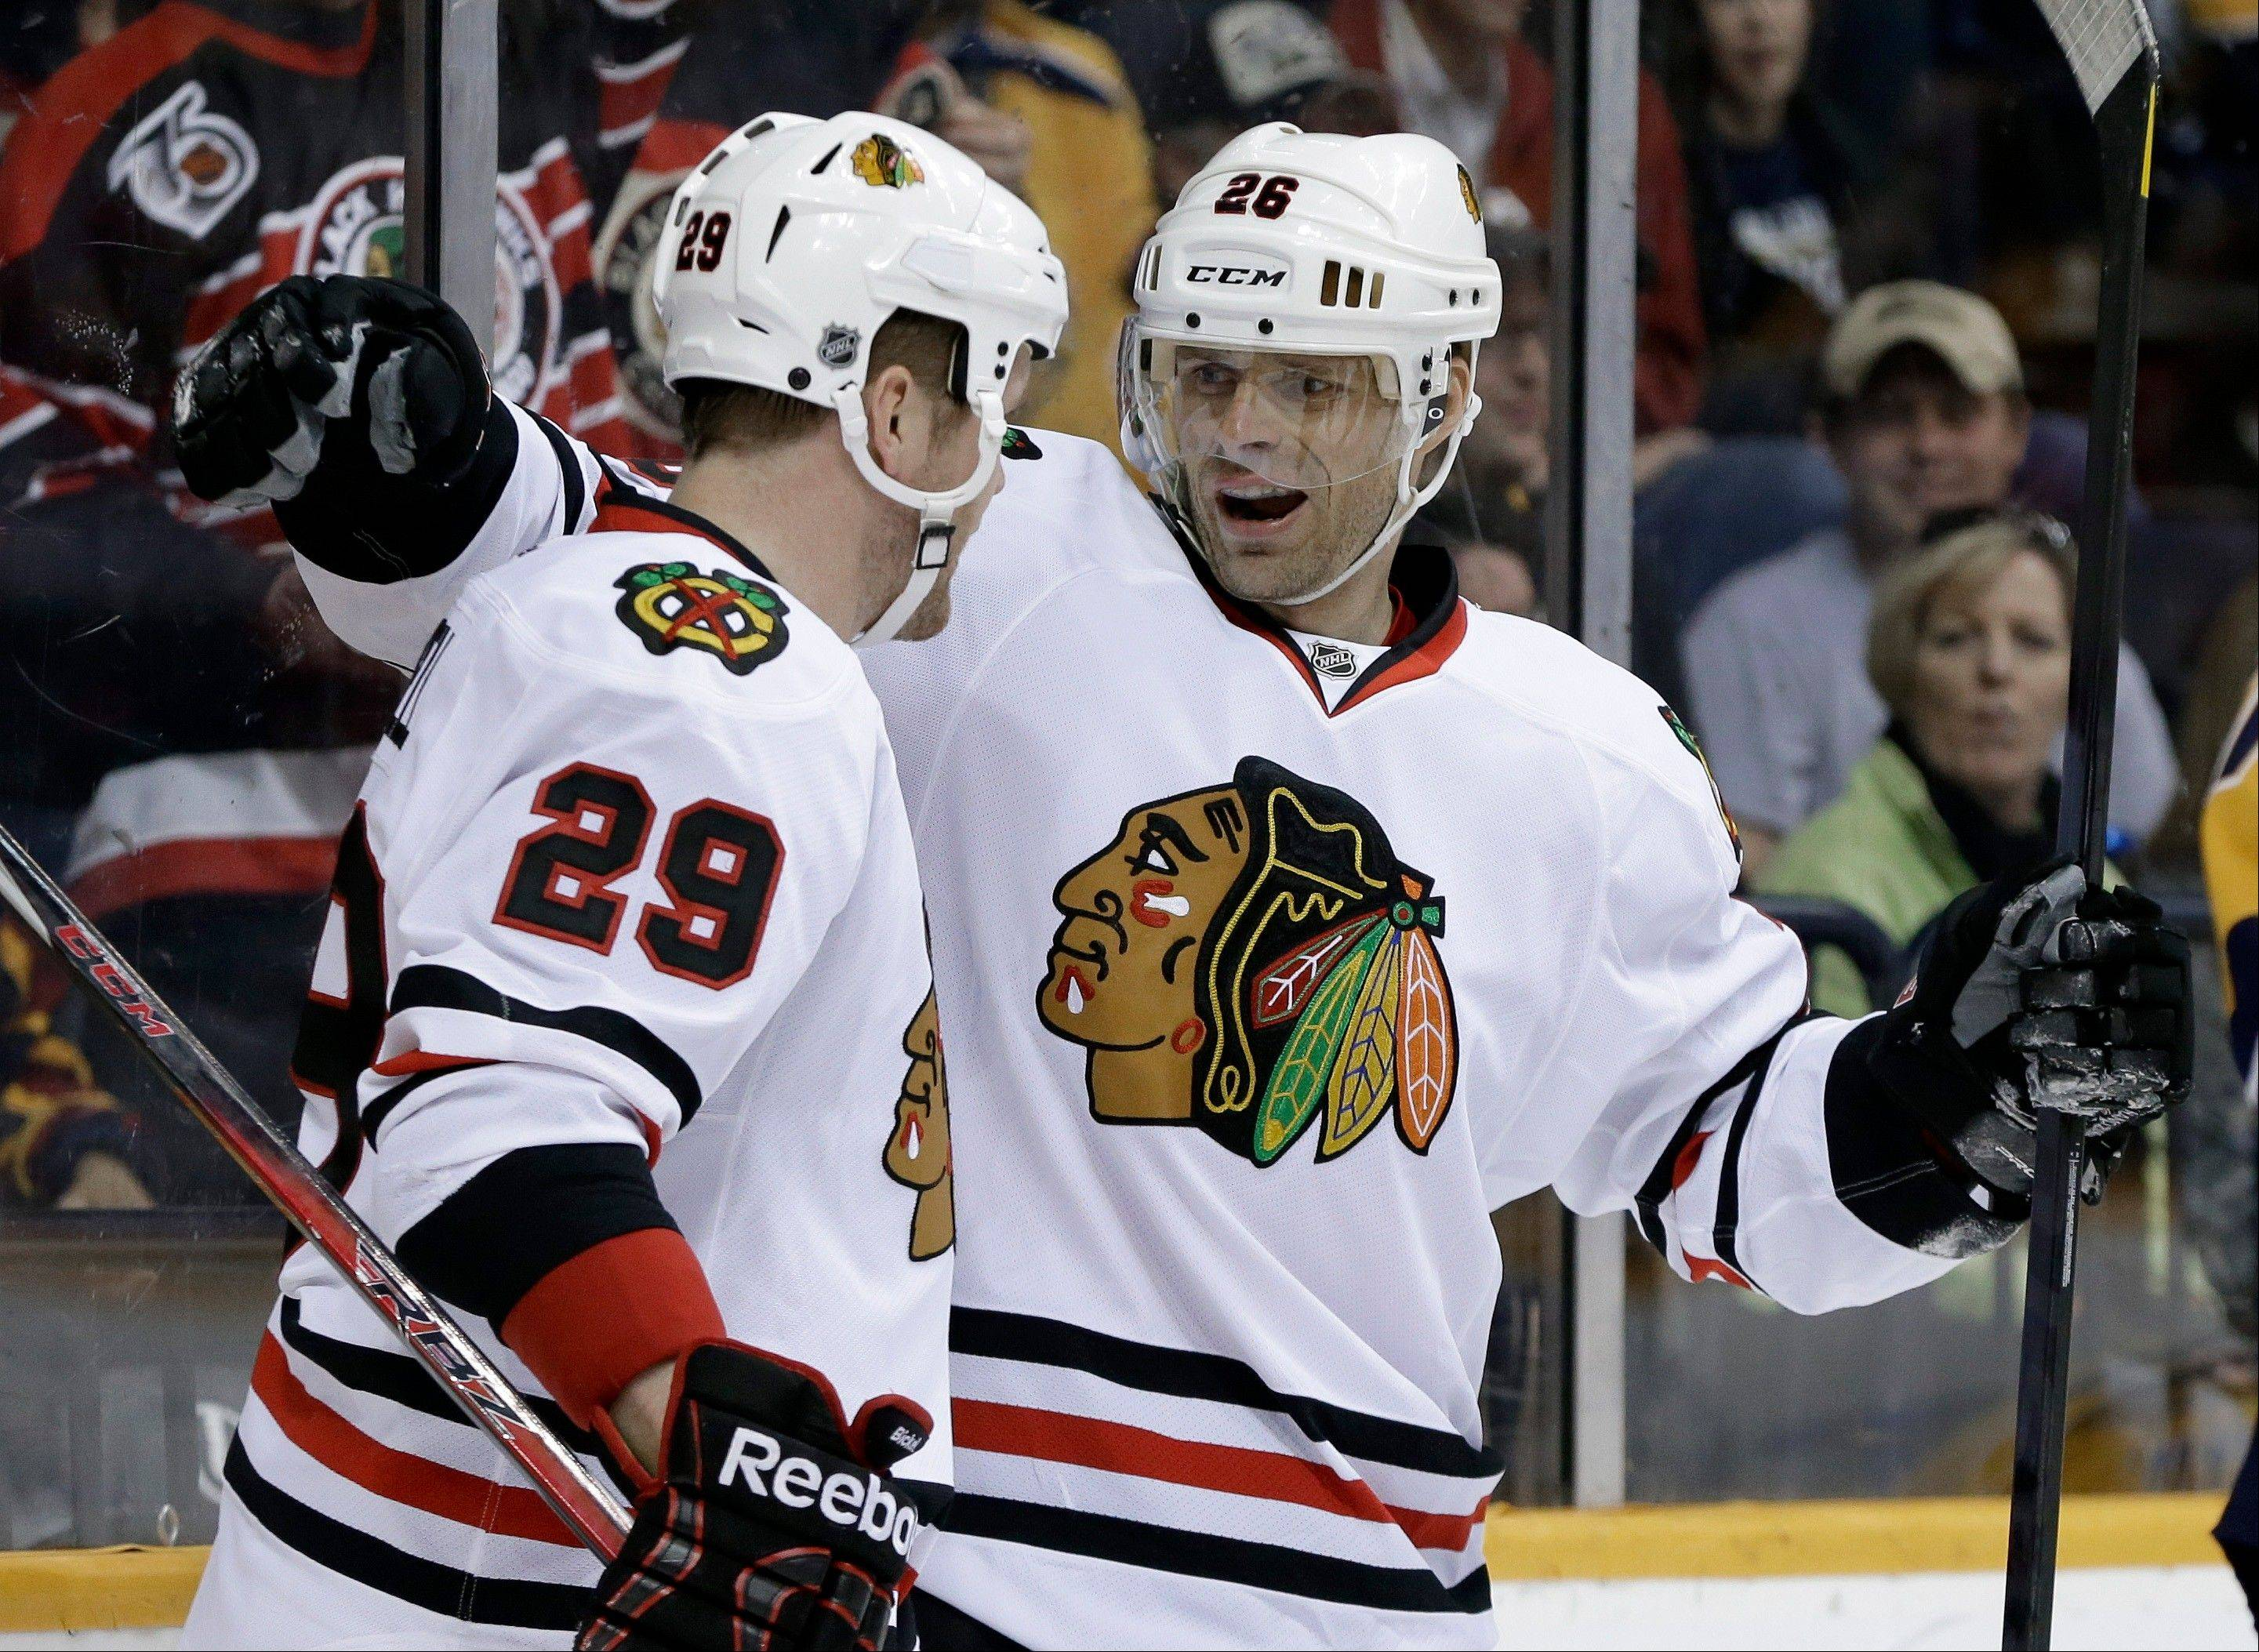 Handzus knows how to get it done for Hawks